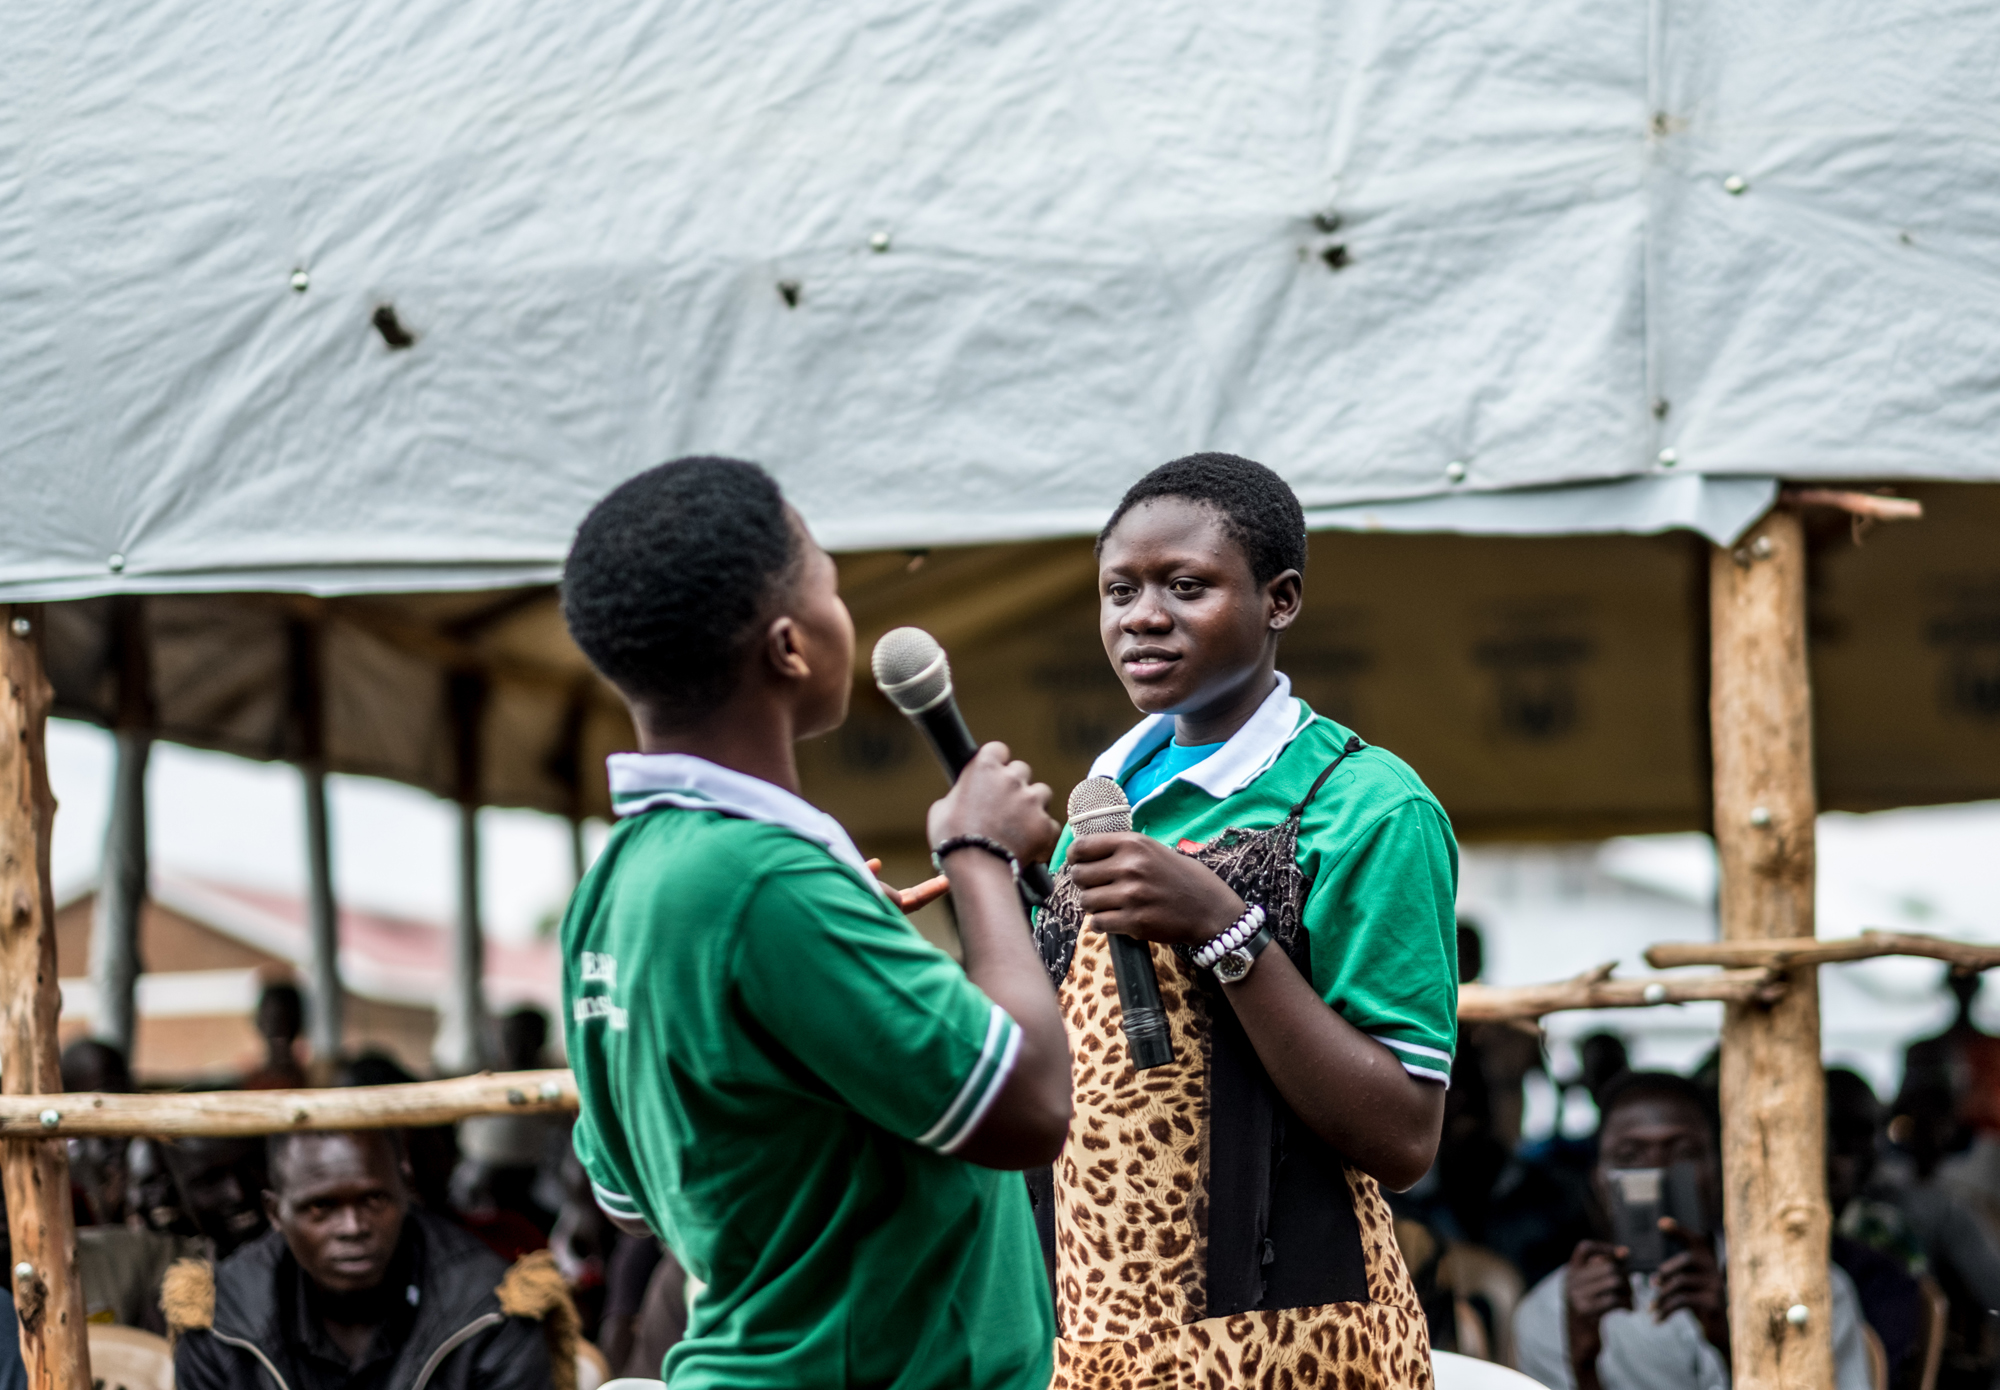 A drama group performs a skit about the dangers of child marriage during an event staged by Caritas in Bidibidi camp, Uganda.